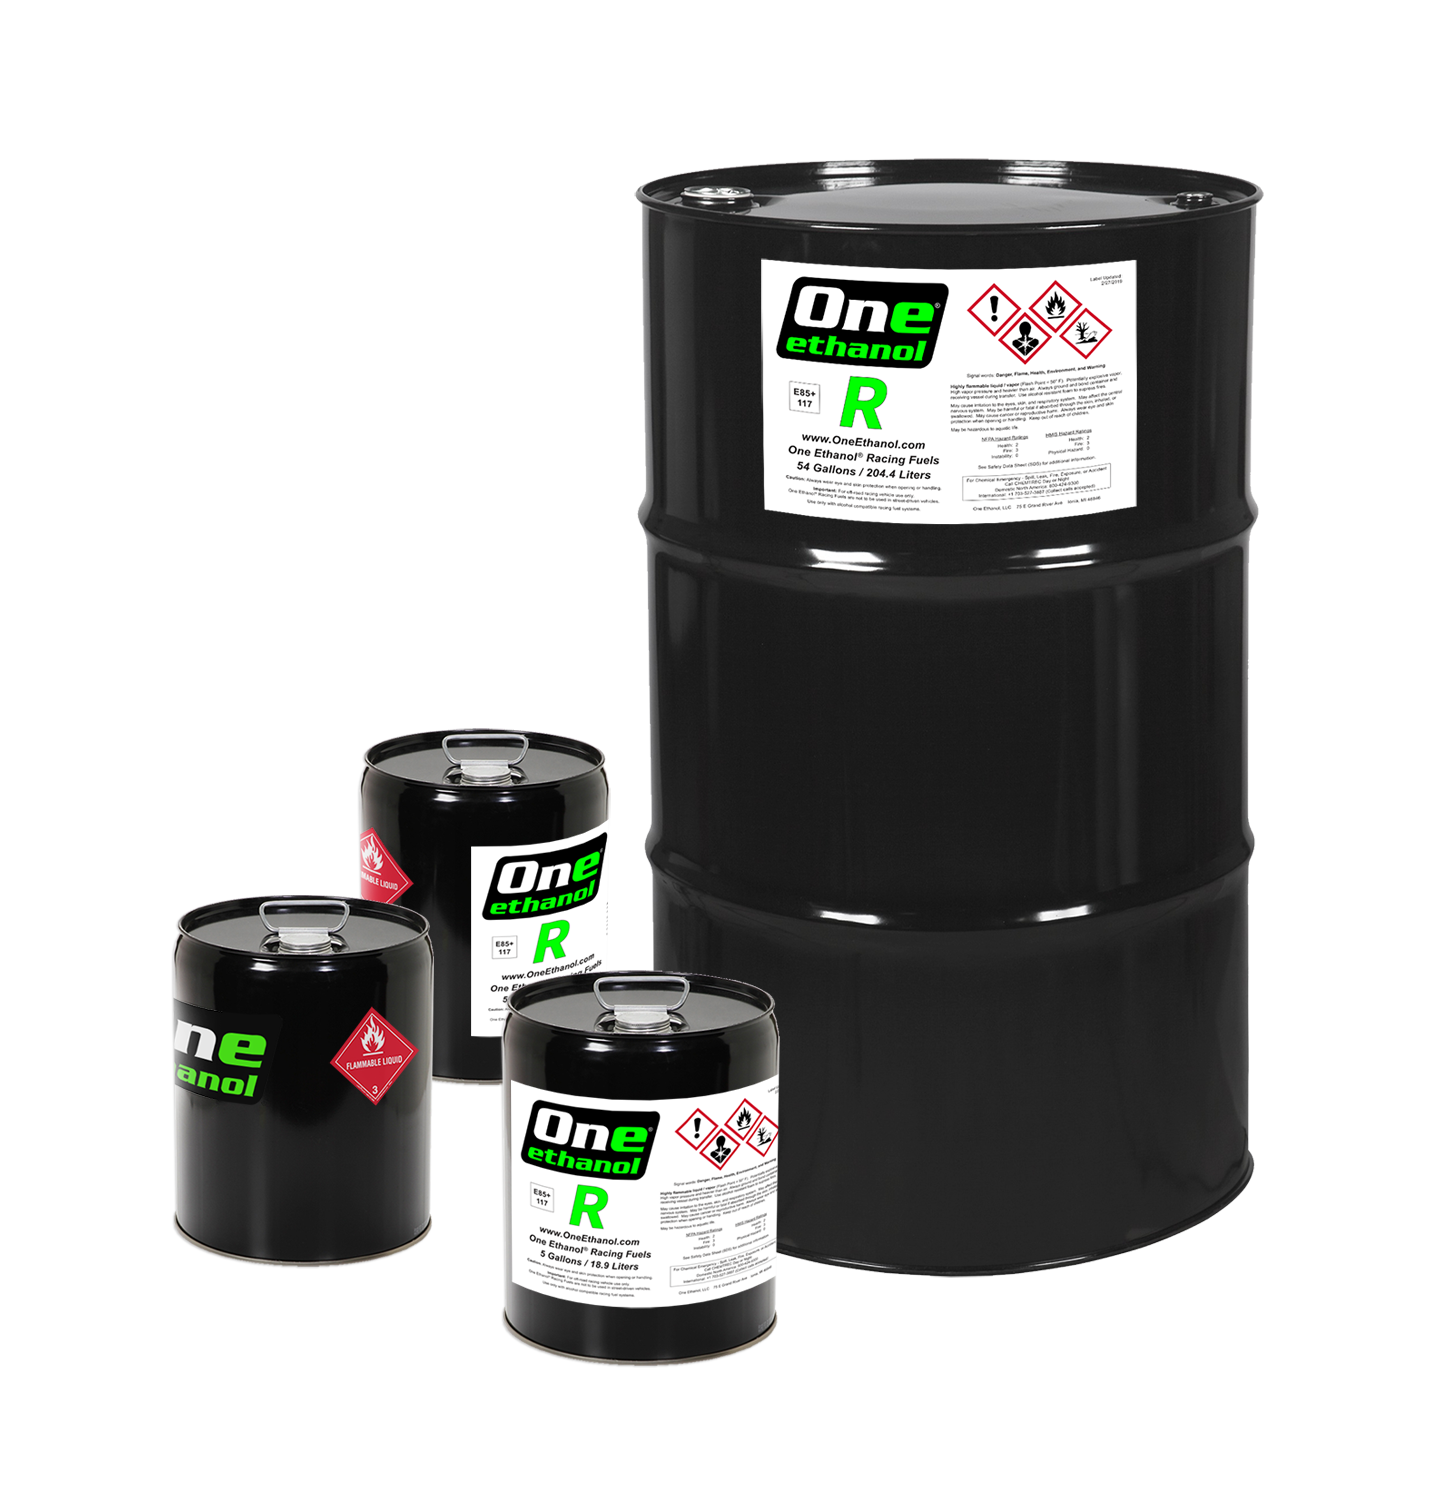 "Product: R - Applications: High Powered Forced Induction, Naturally Aspirated, and NitrousEthanol Content: Over 85%Effective Octane: 117+Specific Gravity: 0.795 at 68° FStreet Legal: NoNo MTBE, nitromethane, or leadOne Ethanol ""R"" is a specially formulated ethanol blend intended for ultra high performance racing engines. R was designed to be used in forced induction, nitrous, and N/A engines requiring race fuels with an octane rating of 116 or higher.R has powered drag radial race cars with small displacement engines running 6 second 1/4 mile times at over 200 MPH."